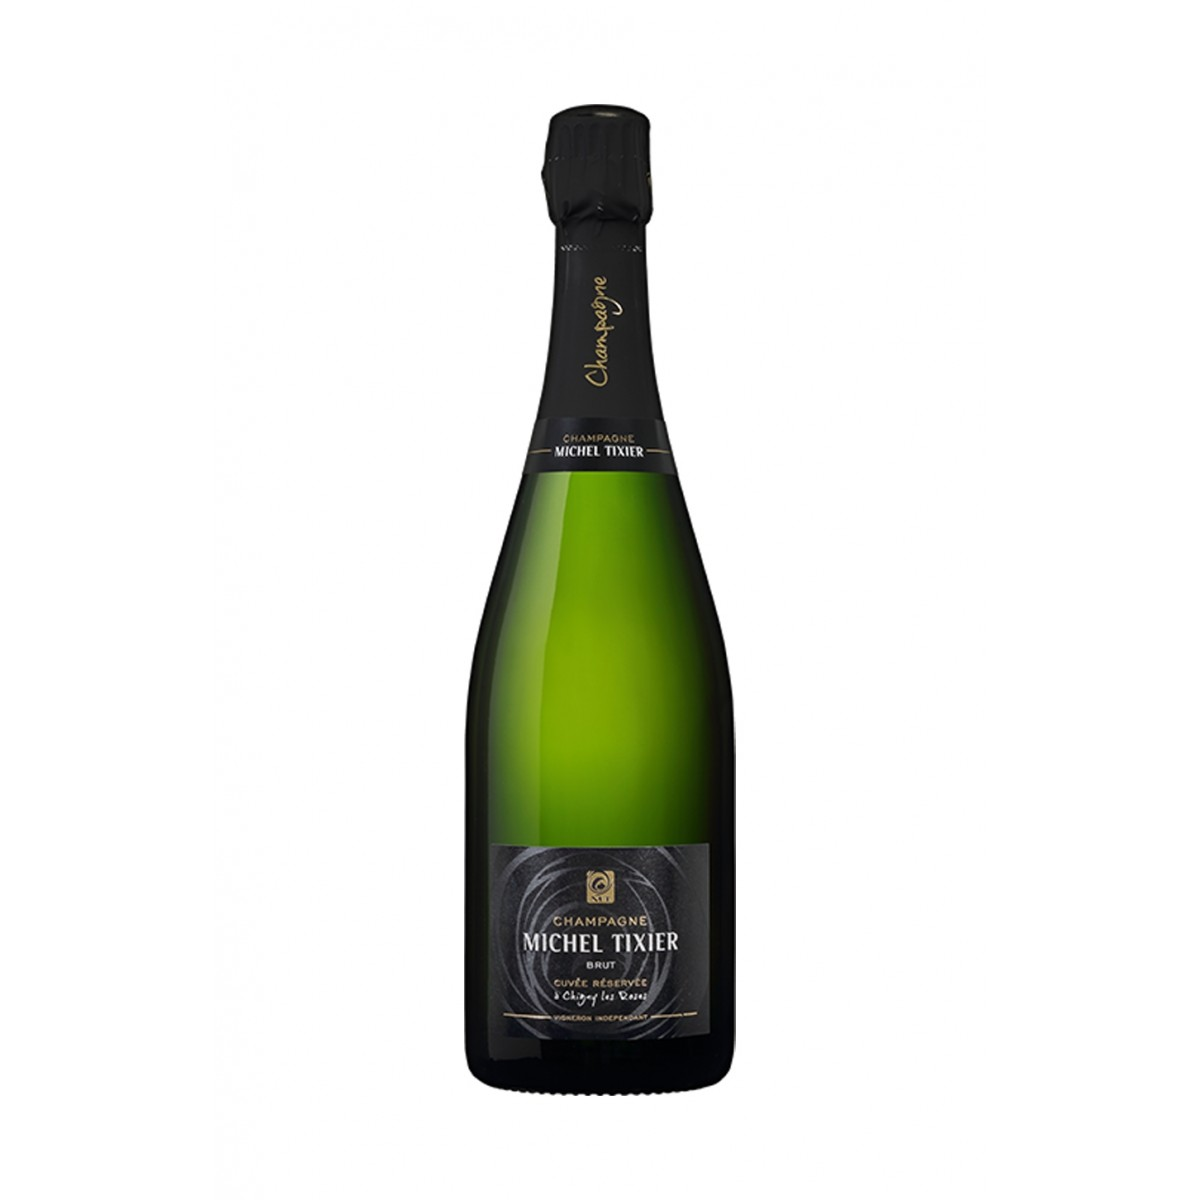 Champagne Cuvee Reservee Brut - Michel Tixier